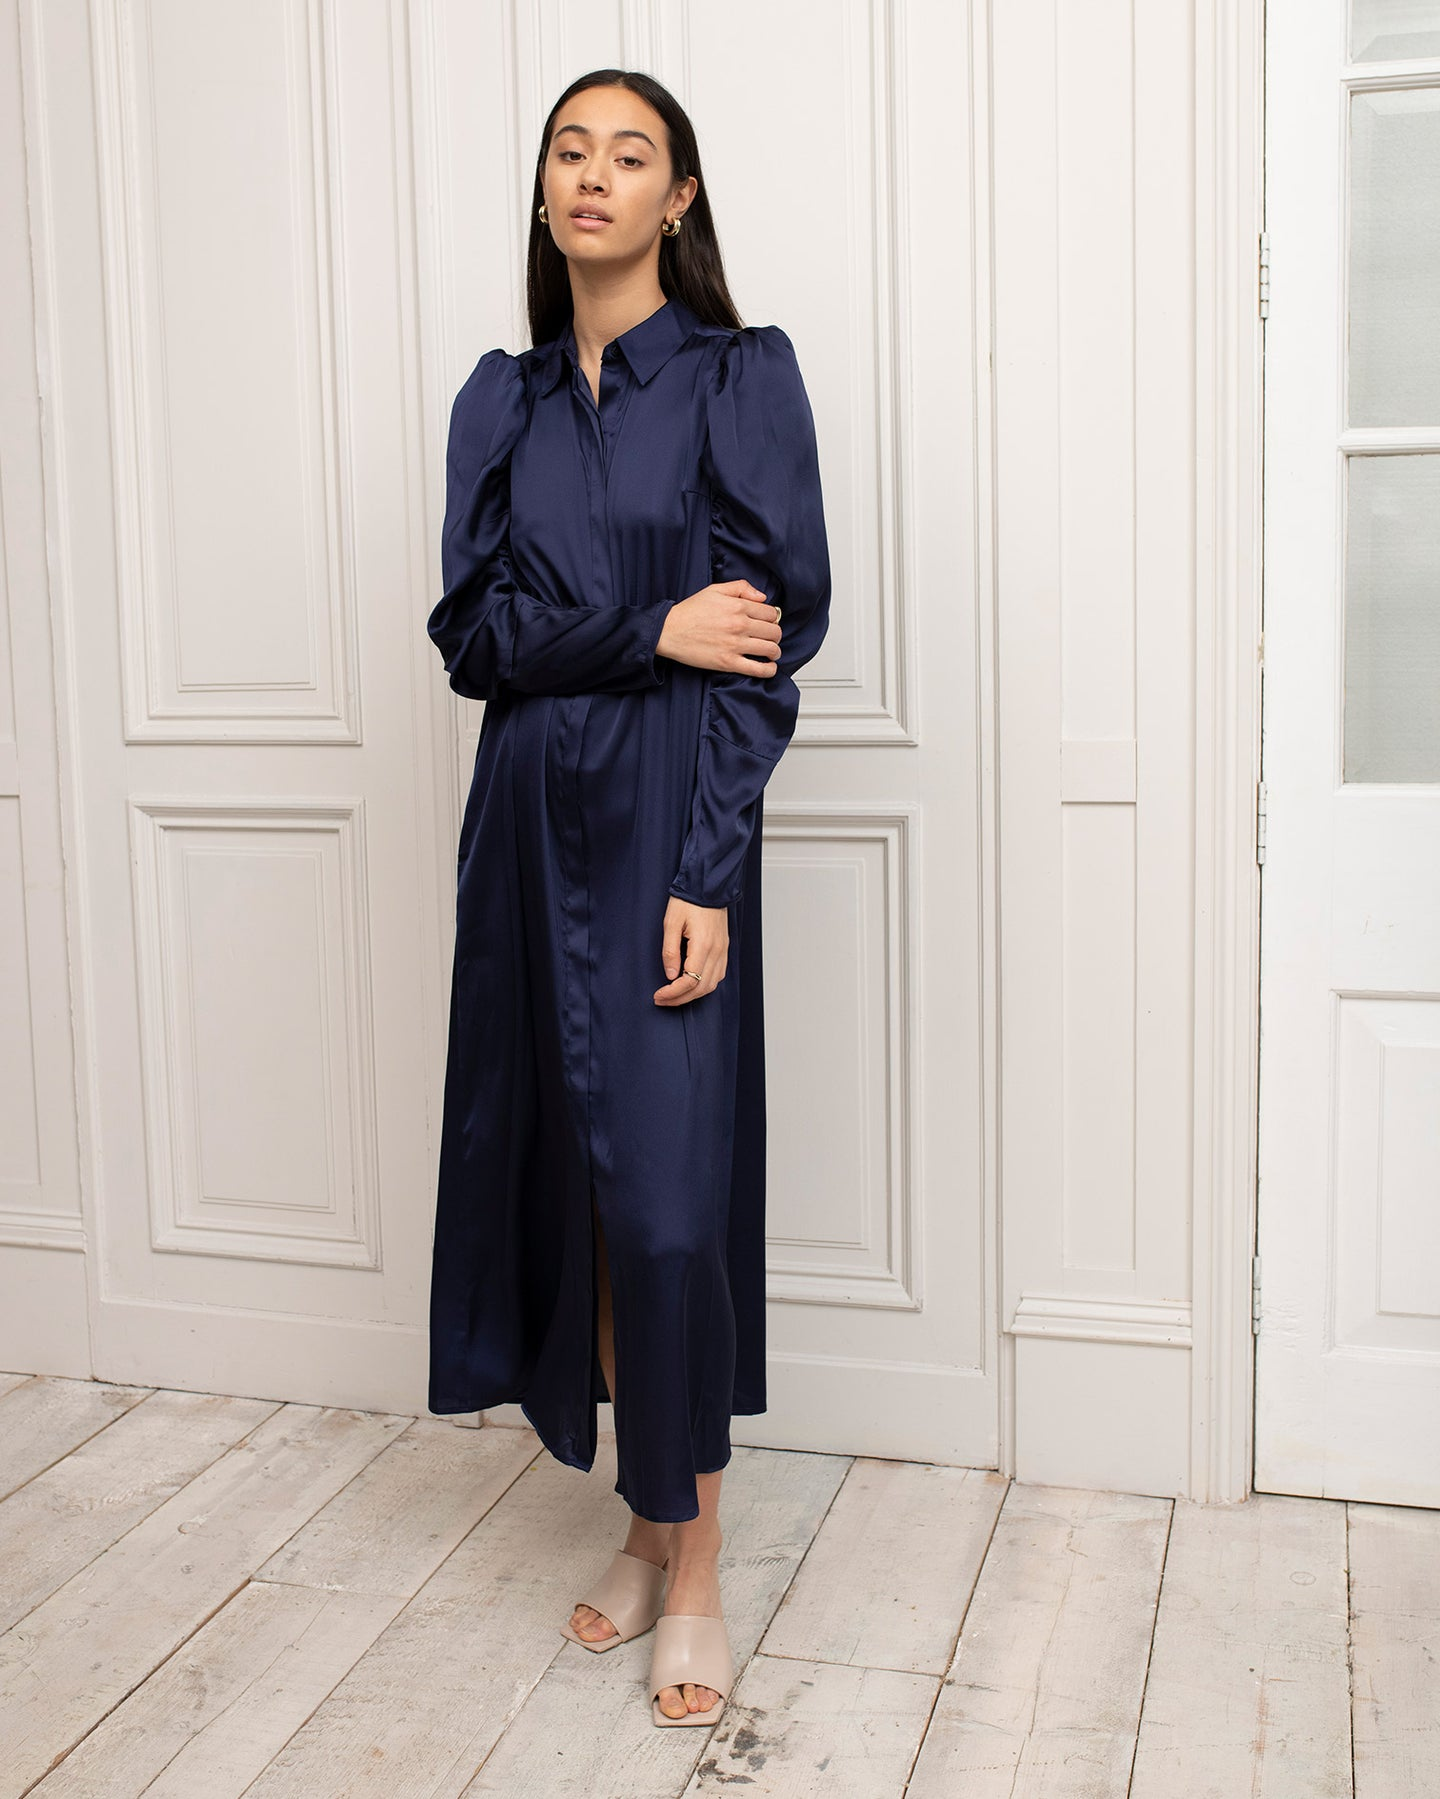 Recycled Polyester Navy Blue Maxi Shirt Dress with Puff Sleeves